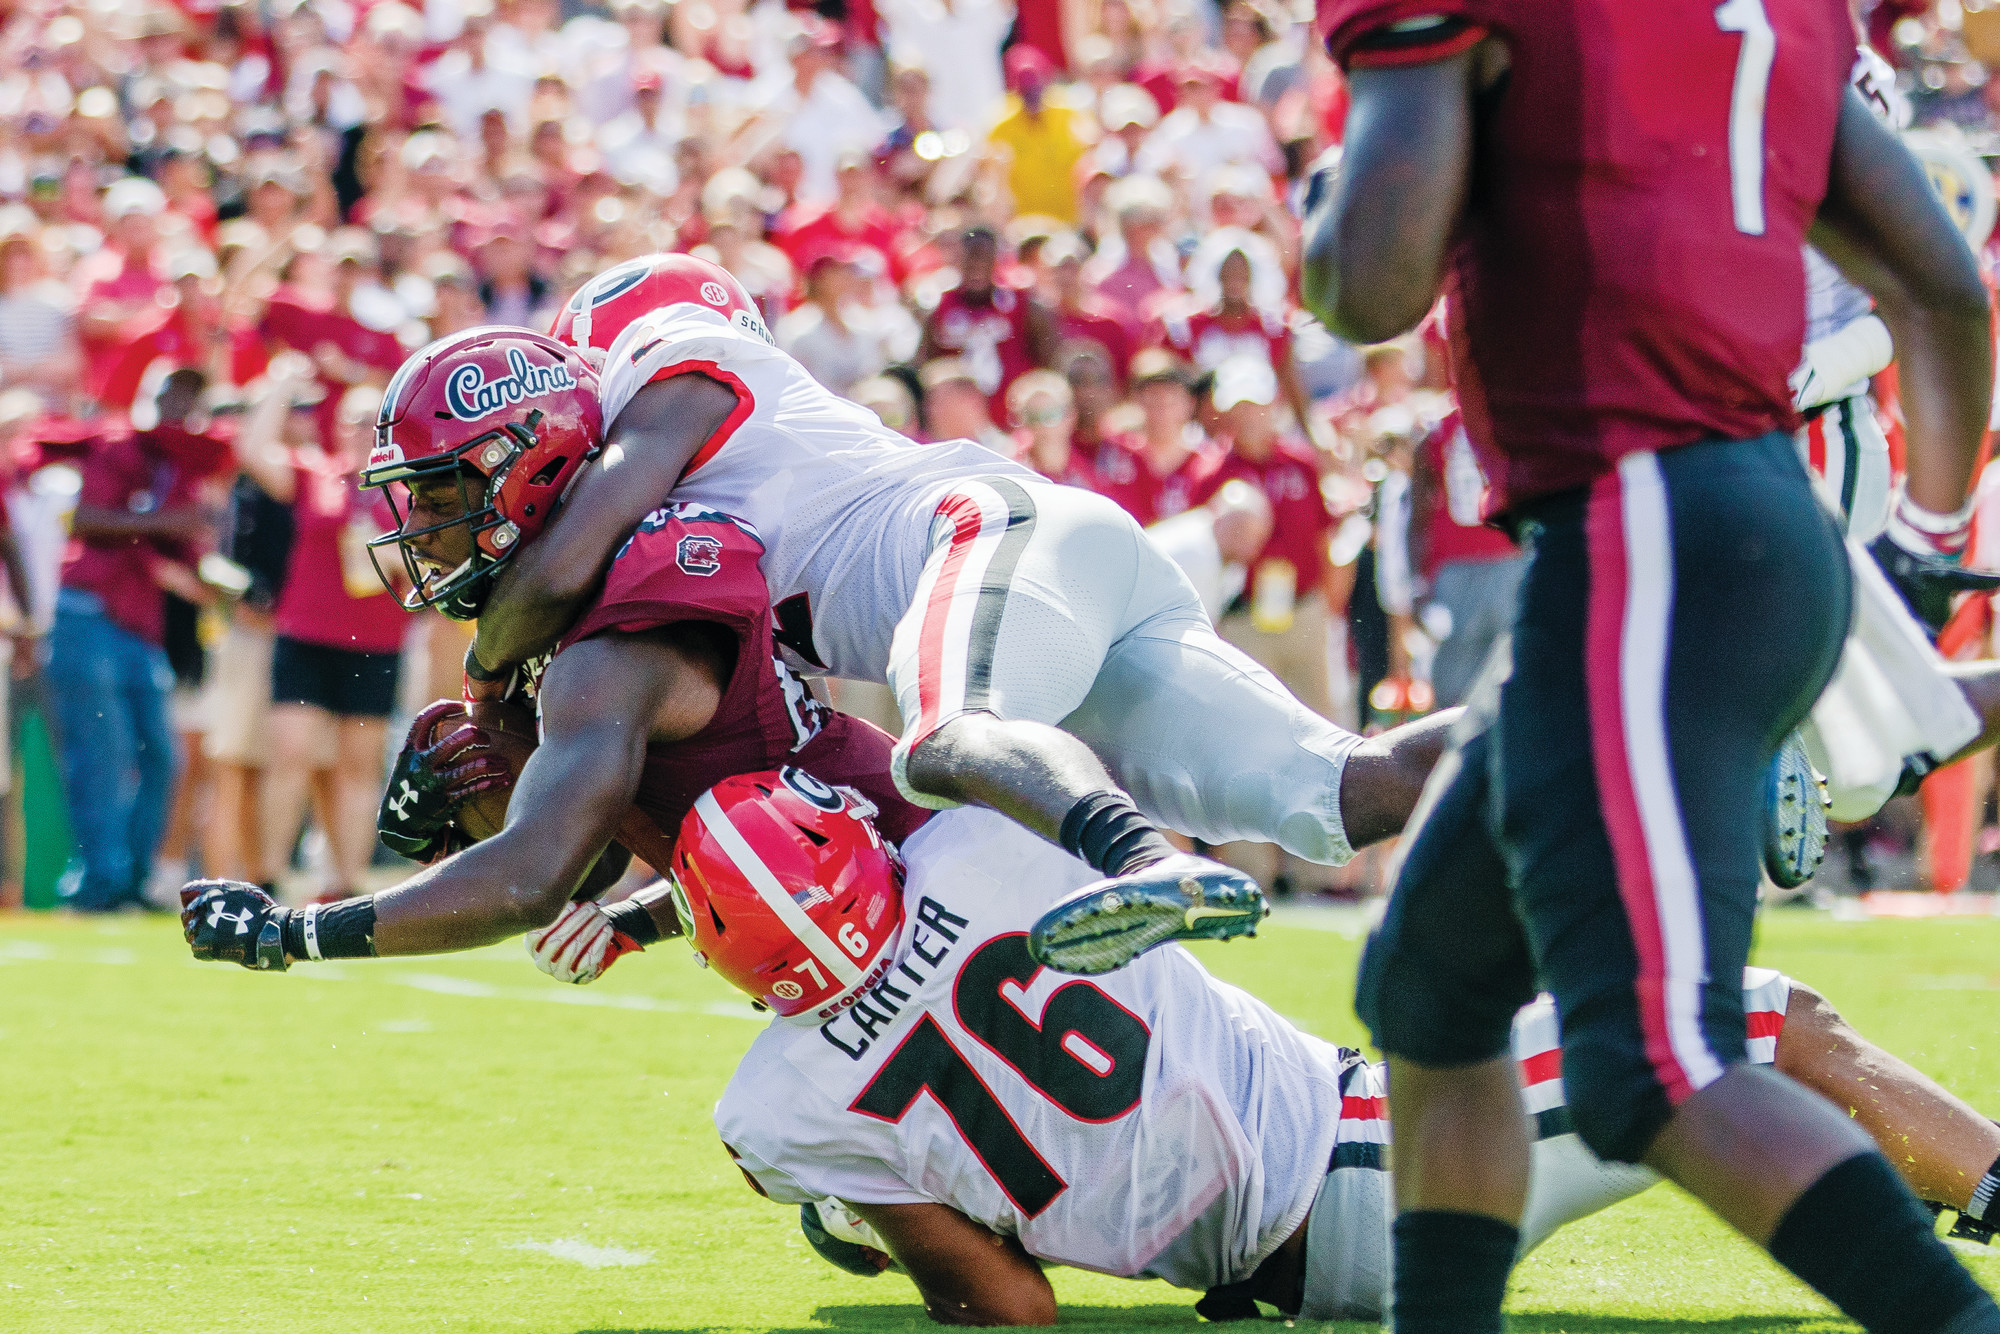 Georgia's D'Andre Swift runs as the Carolina defense pursues during the Bulldogs' 41-17 victory over the Gamecocks on Saturday at Williams-Brice Stadium in Columbia.